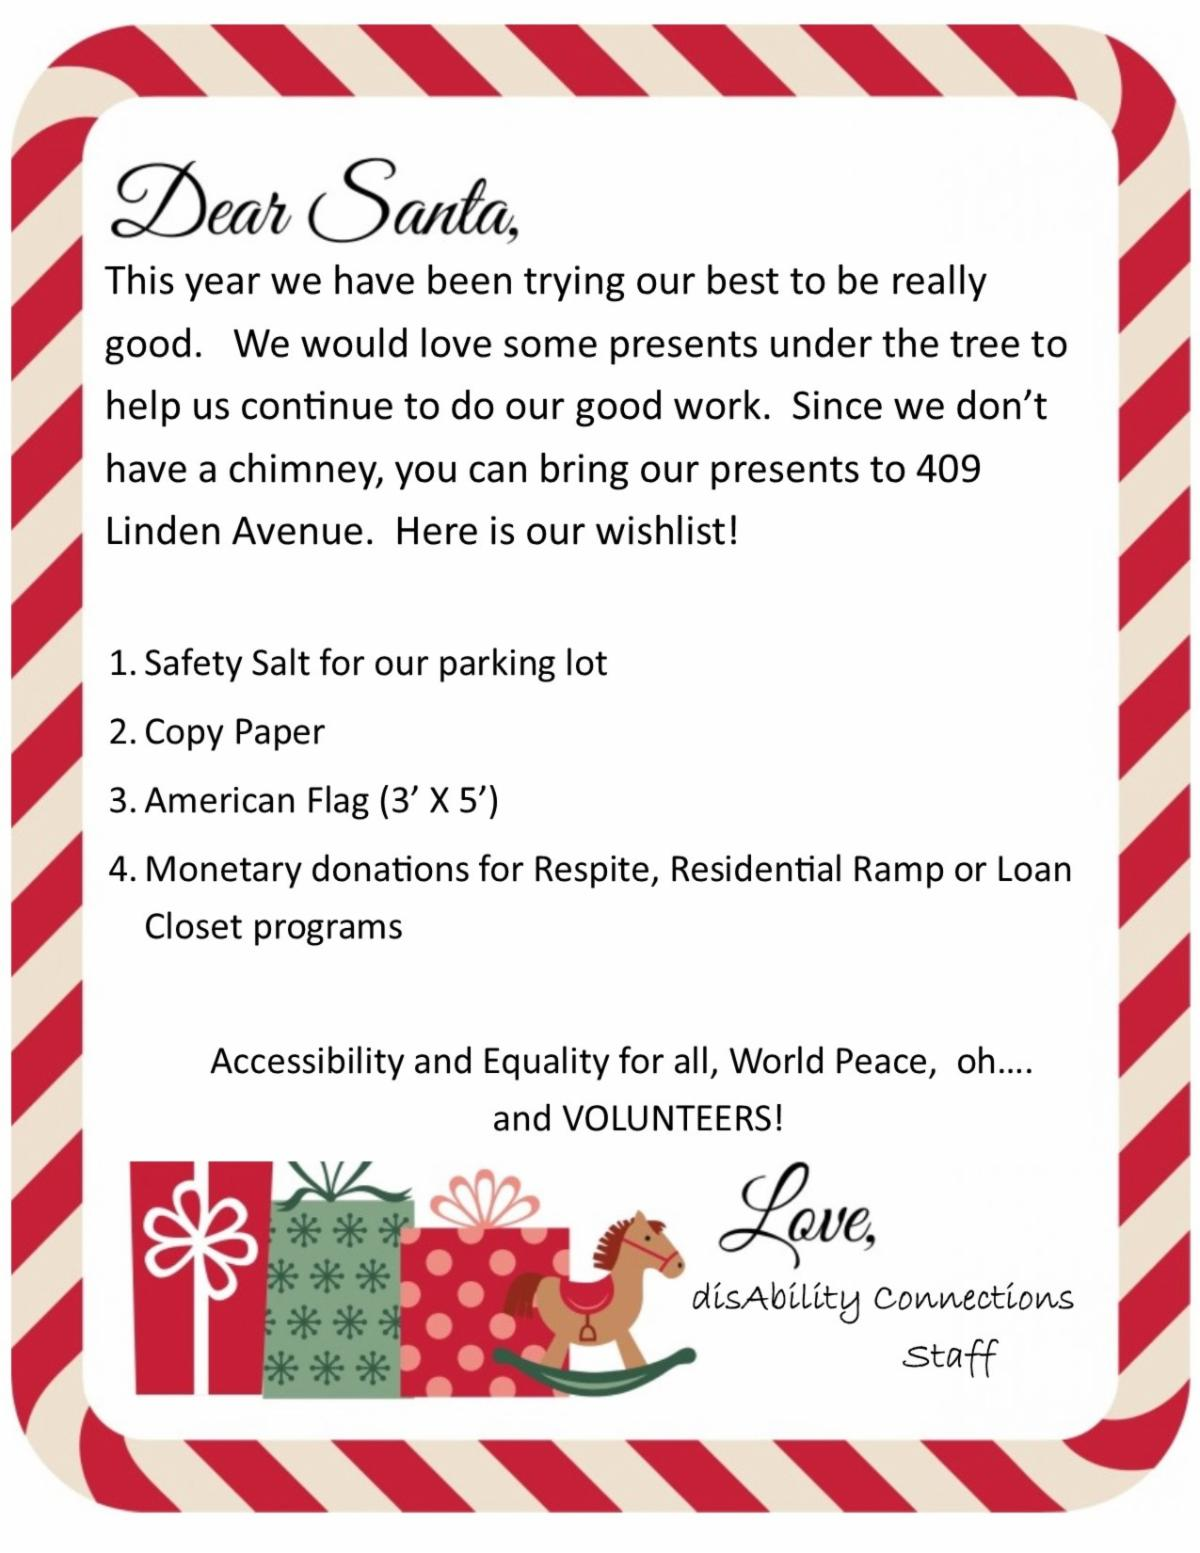 Santa's wishlist. 1. Salt for driveway 2. Copy paper 3.  USA Flag for pole 4. Monetary donations to use with programs like respite or ramp